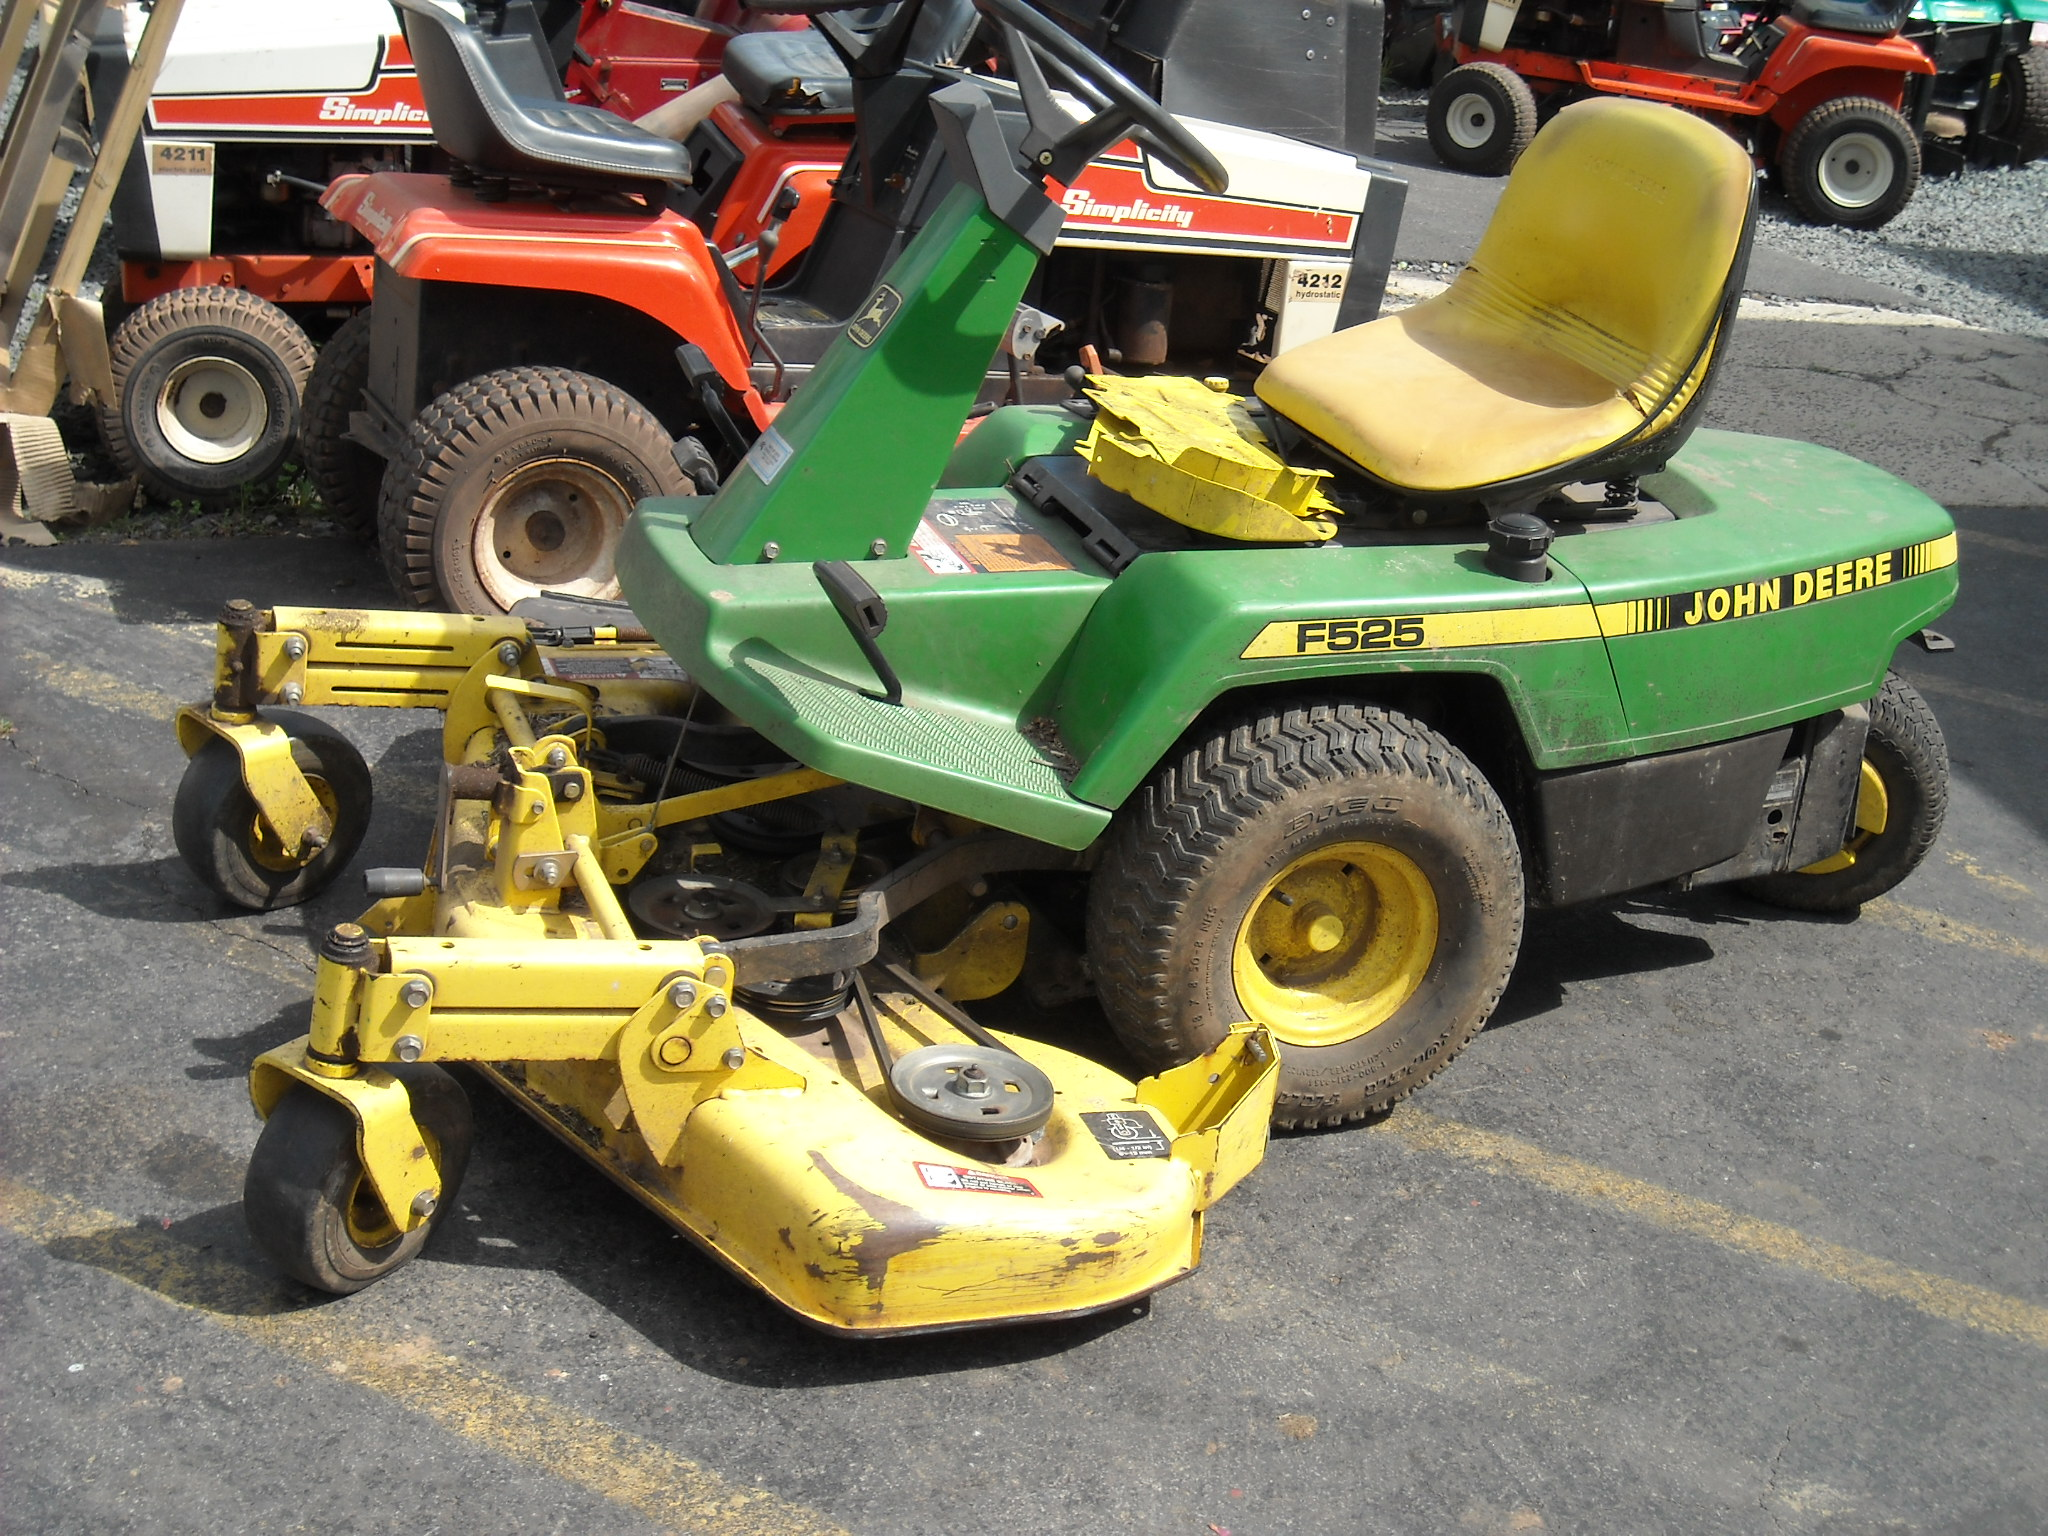 "LX425 - 20HP - 42"" mower - auto trans foot control - 3 yrs old"